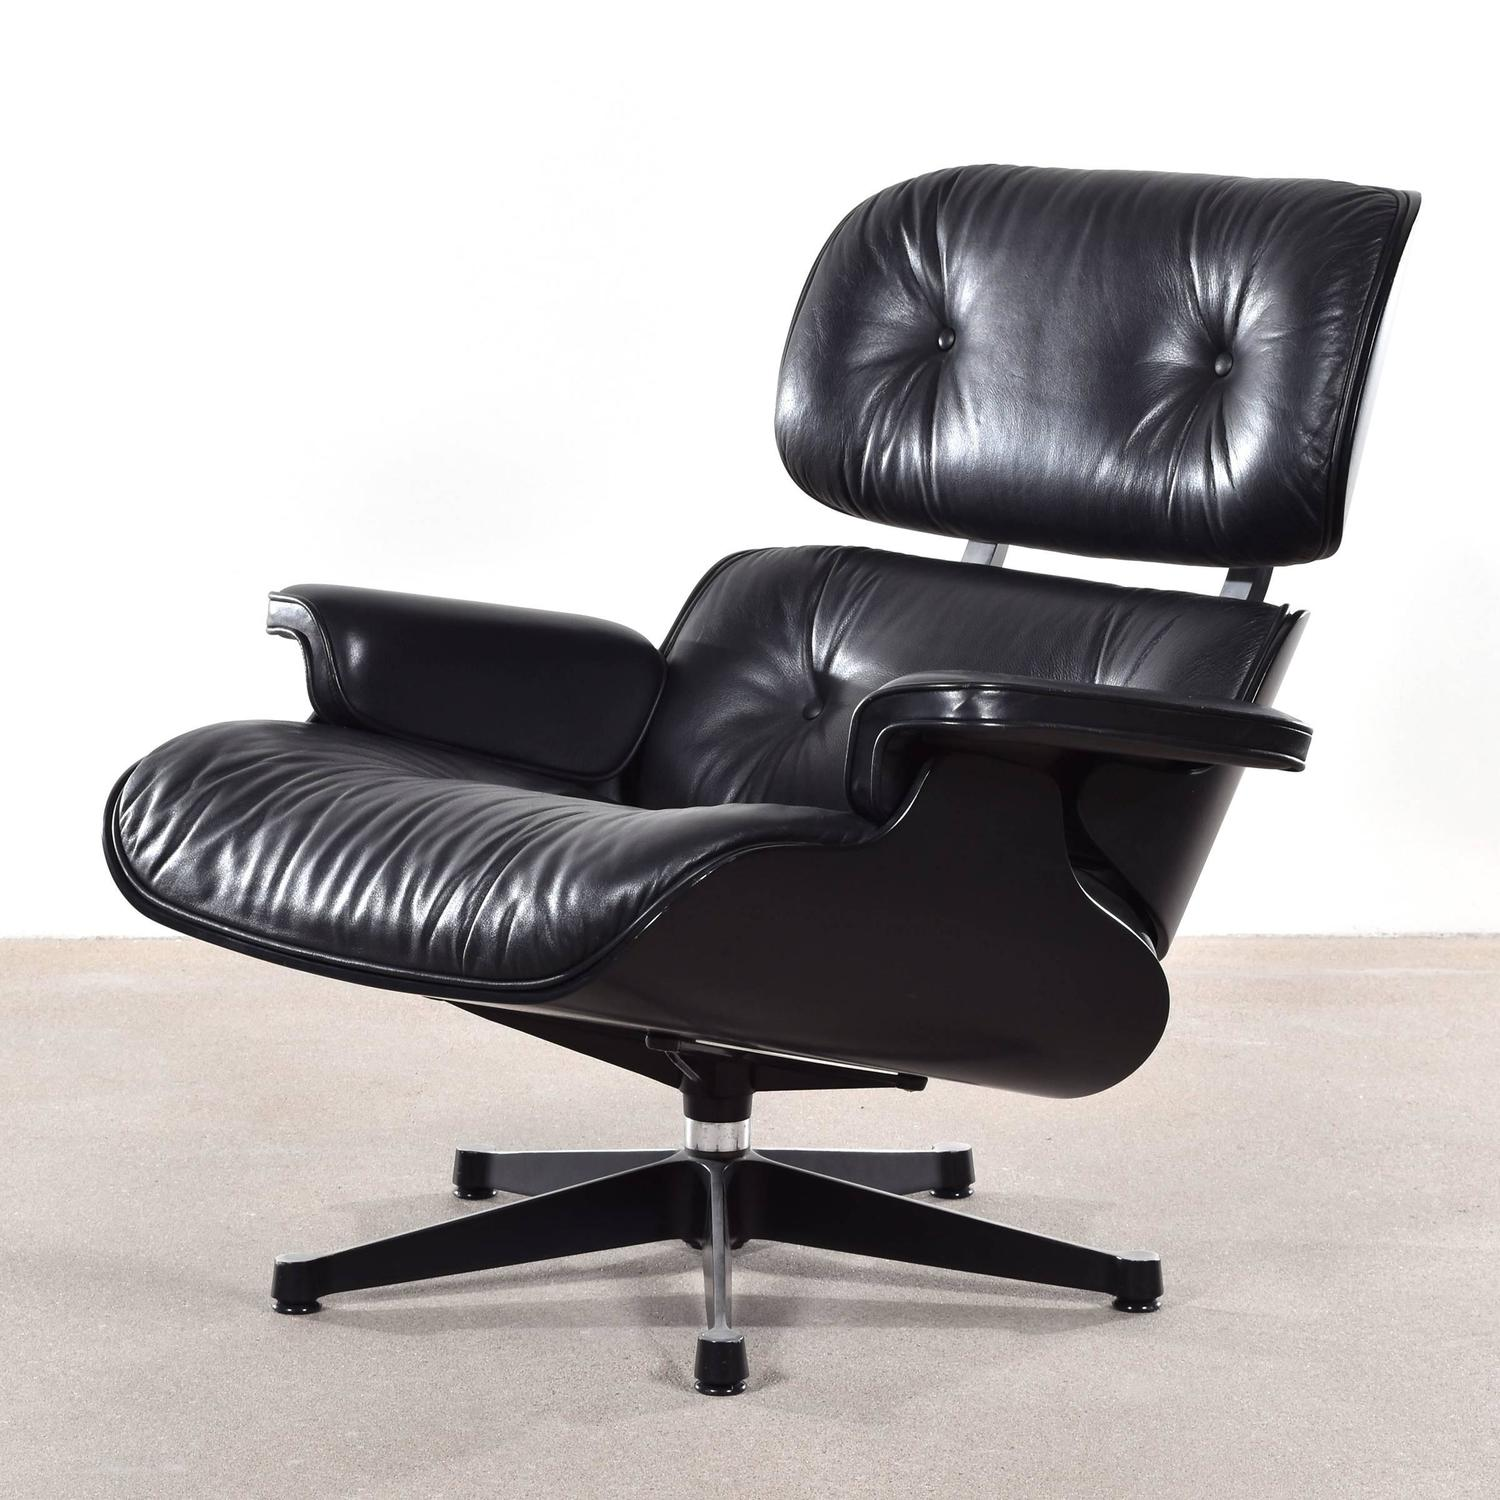 Eames black lounge chair for vitra for sale at 1stdibs for Vitra lounge chair nachbau